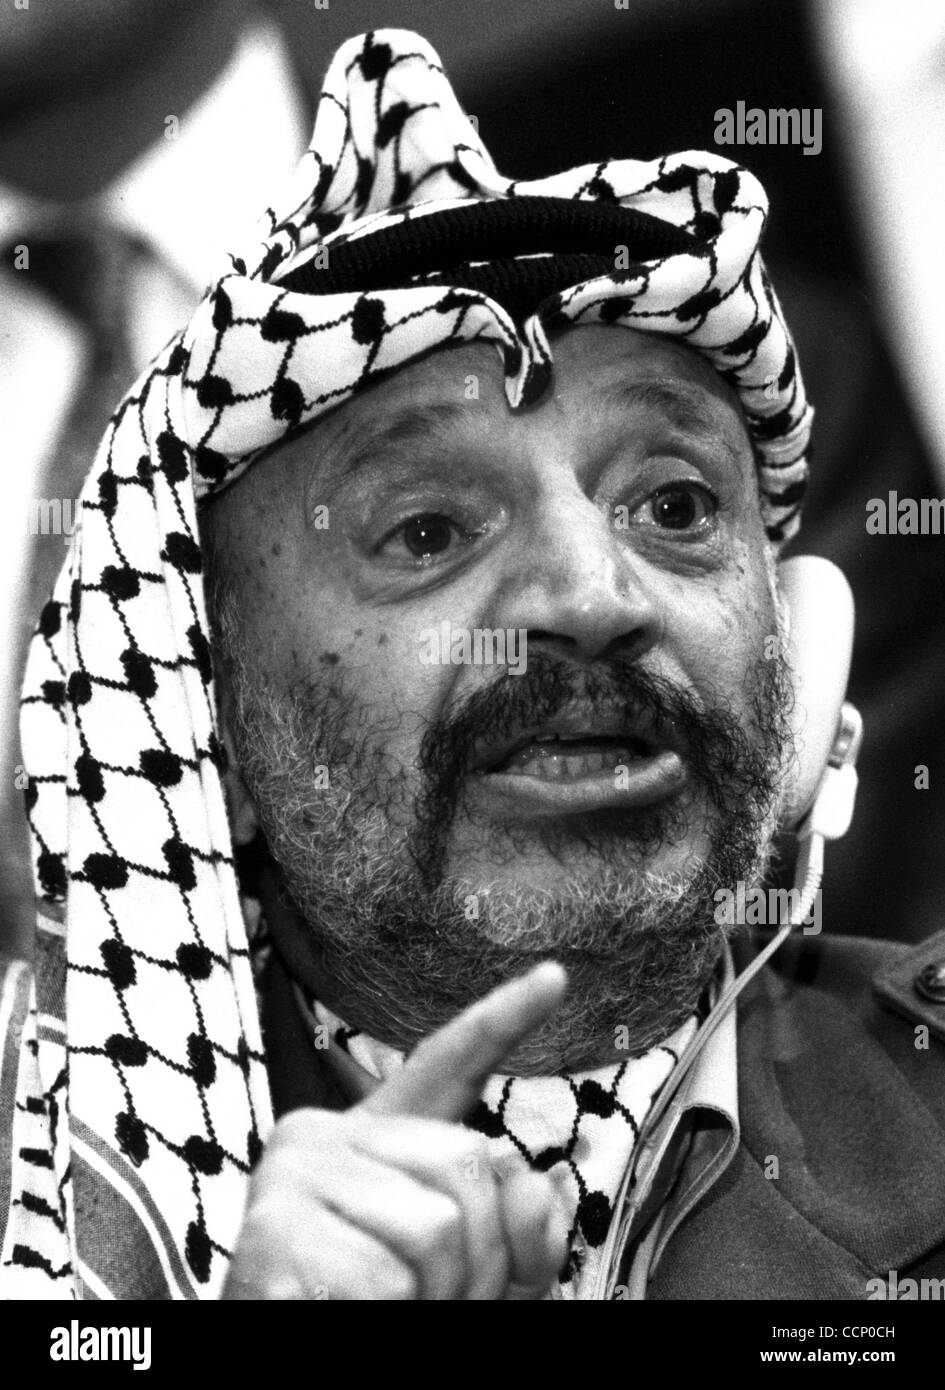 Dec 15, 1988; Geneva, Switzerland; Chairman of the P.L.O. YASSER ARAFAT at the United Nations Assembly press conference. - Stock Image